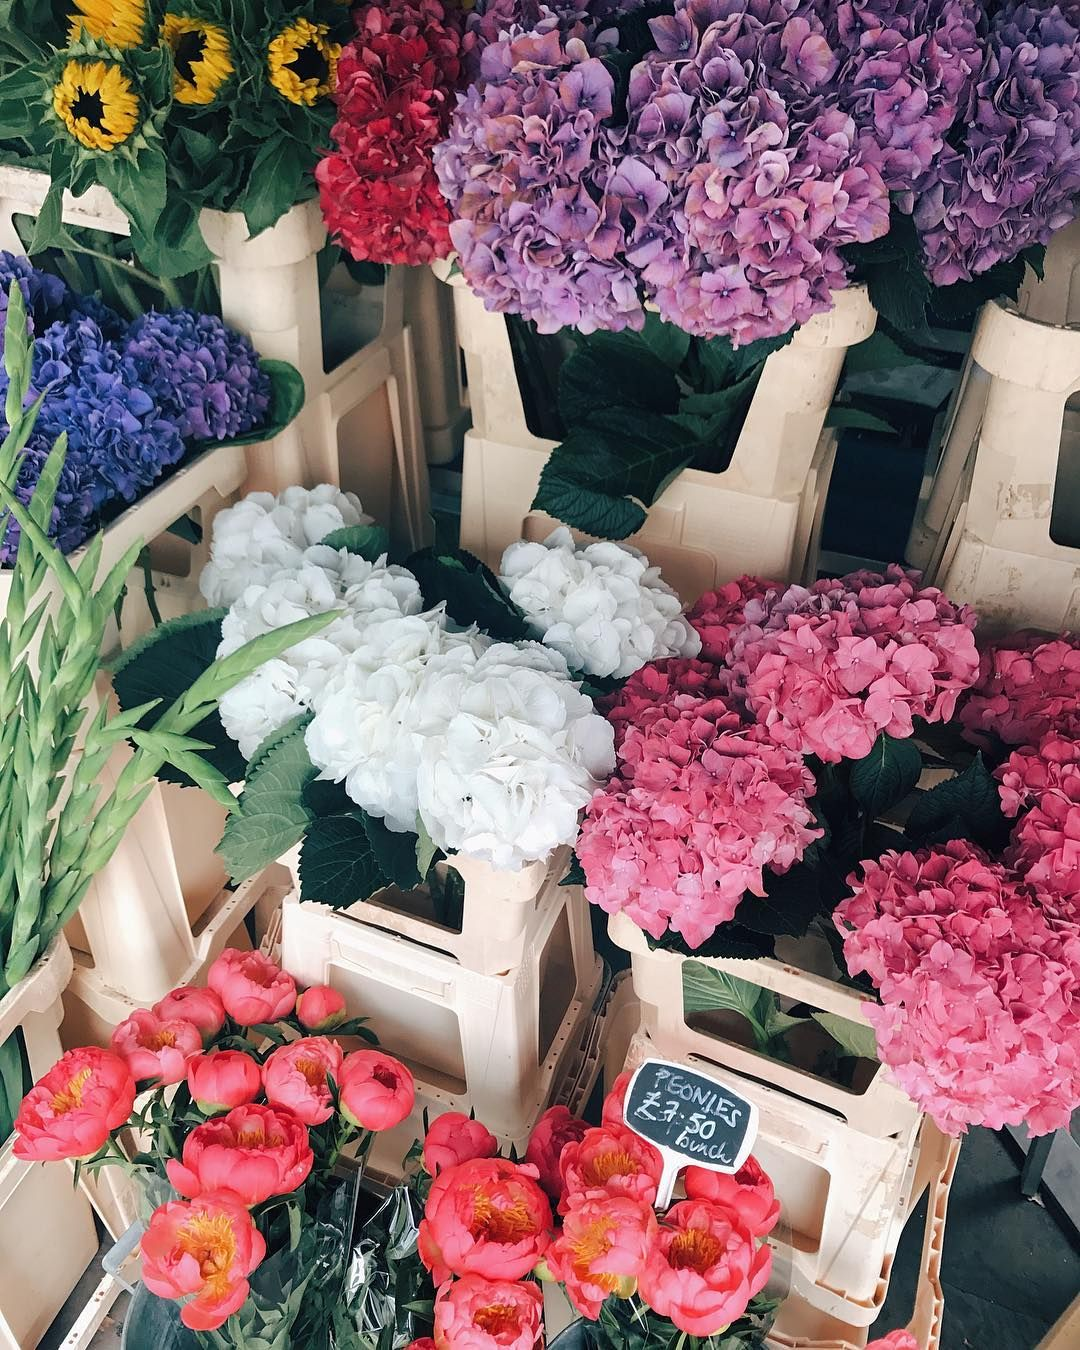 Yes to fresh flowers!